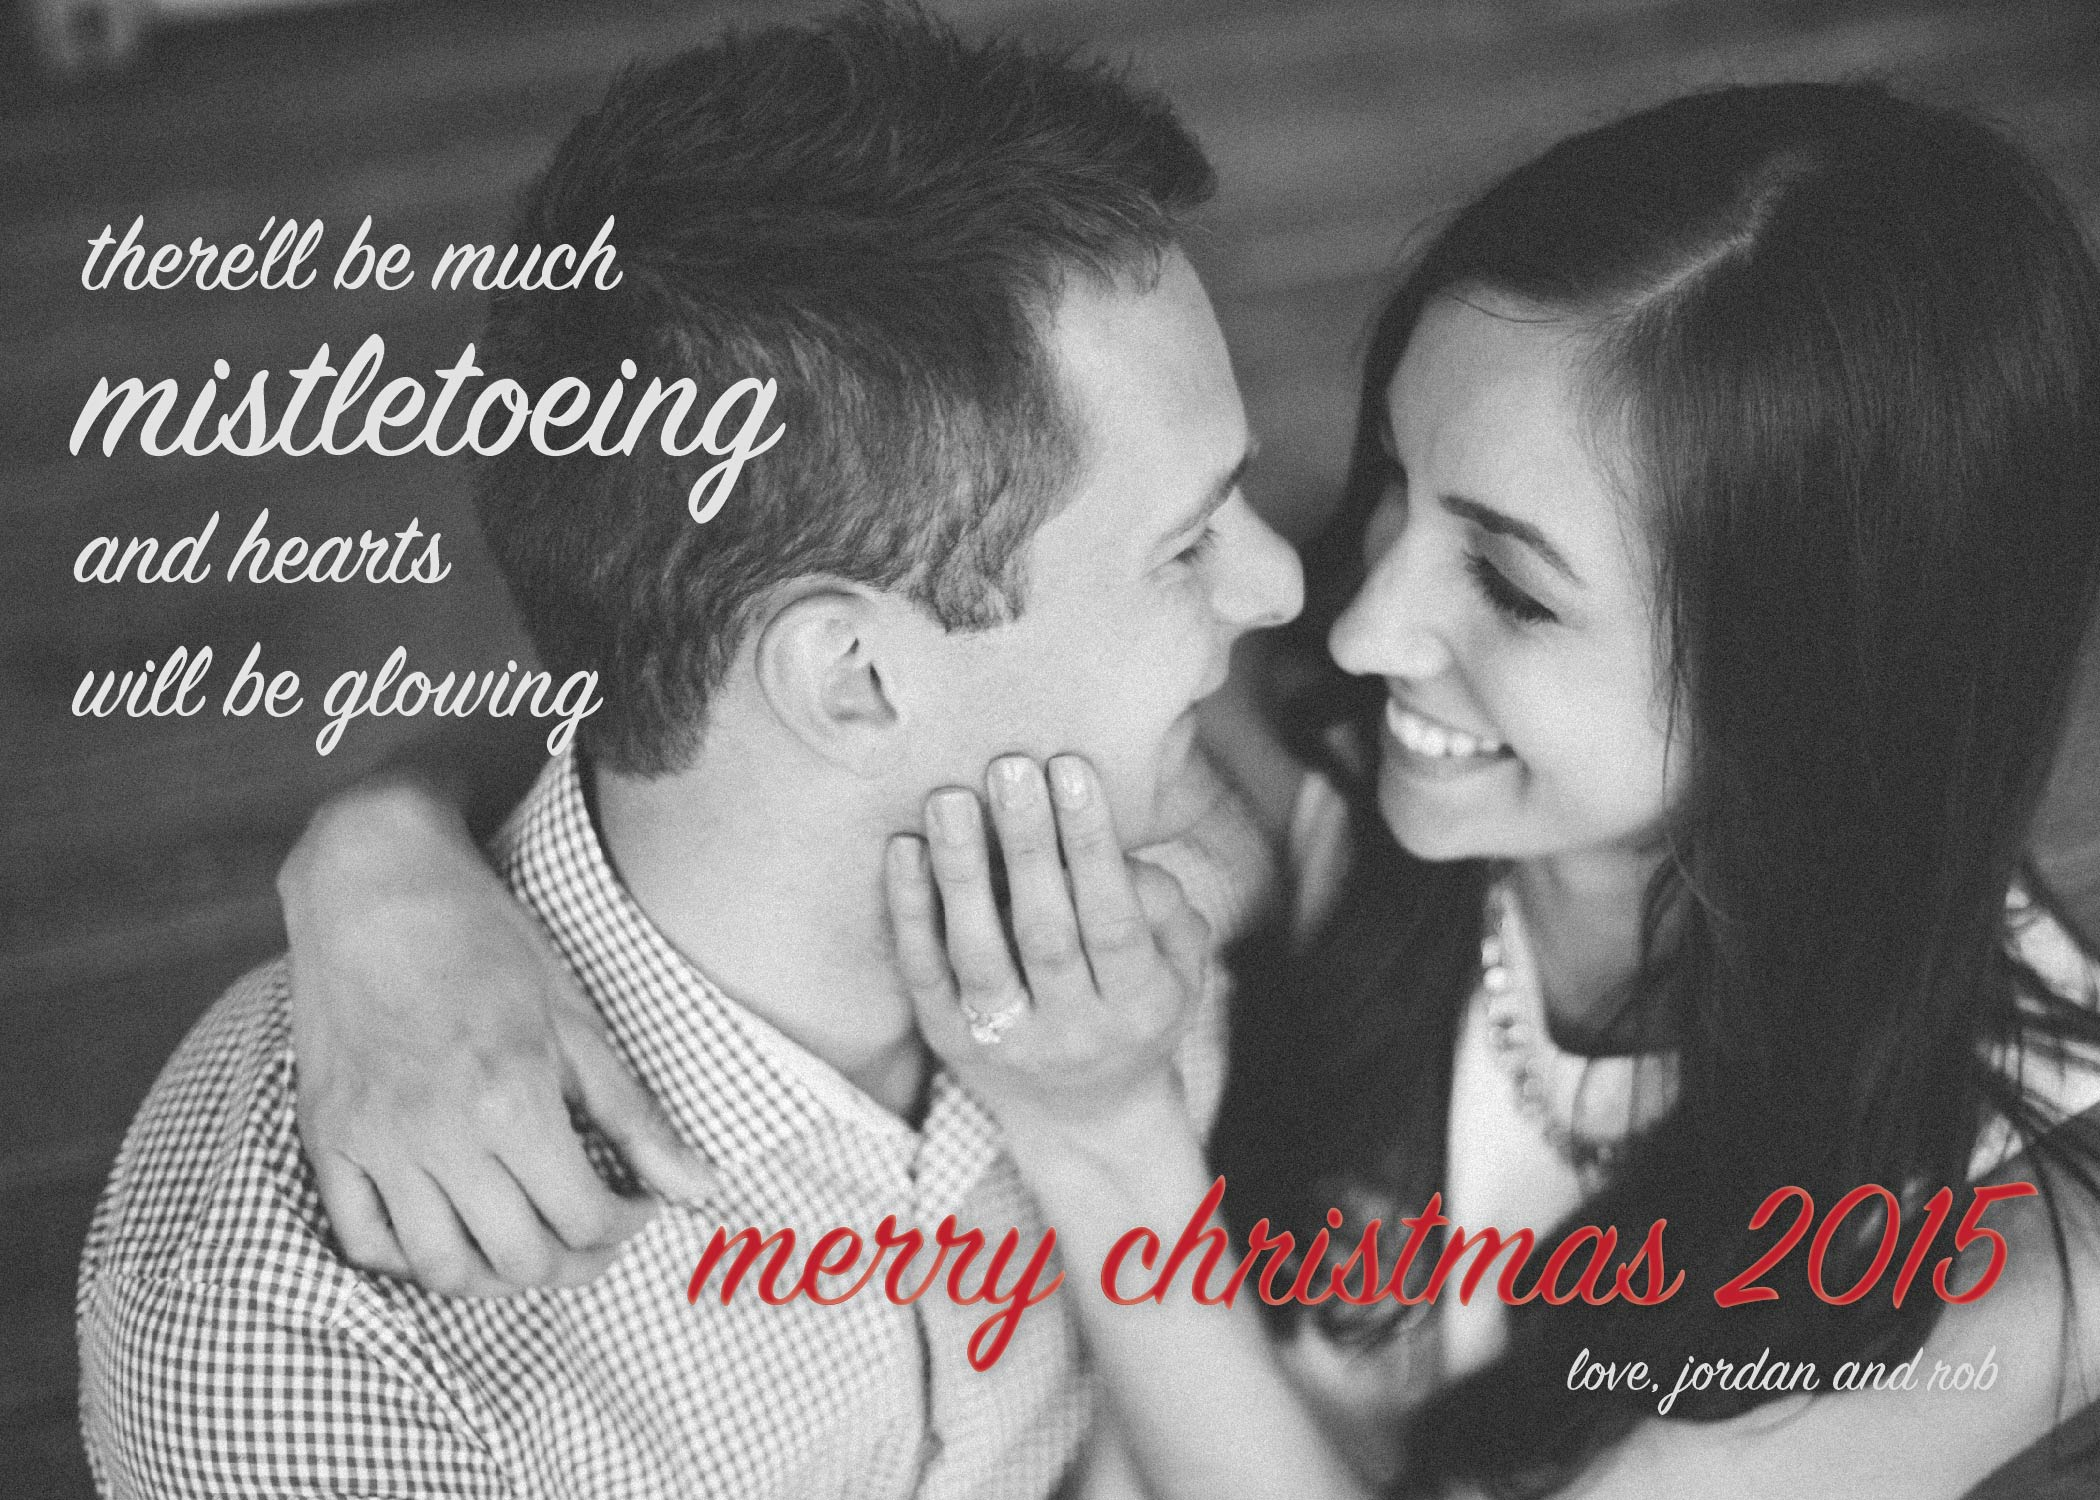 Mistletoe Christmas Card Design